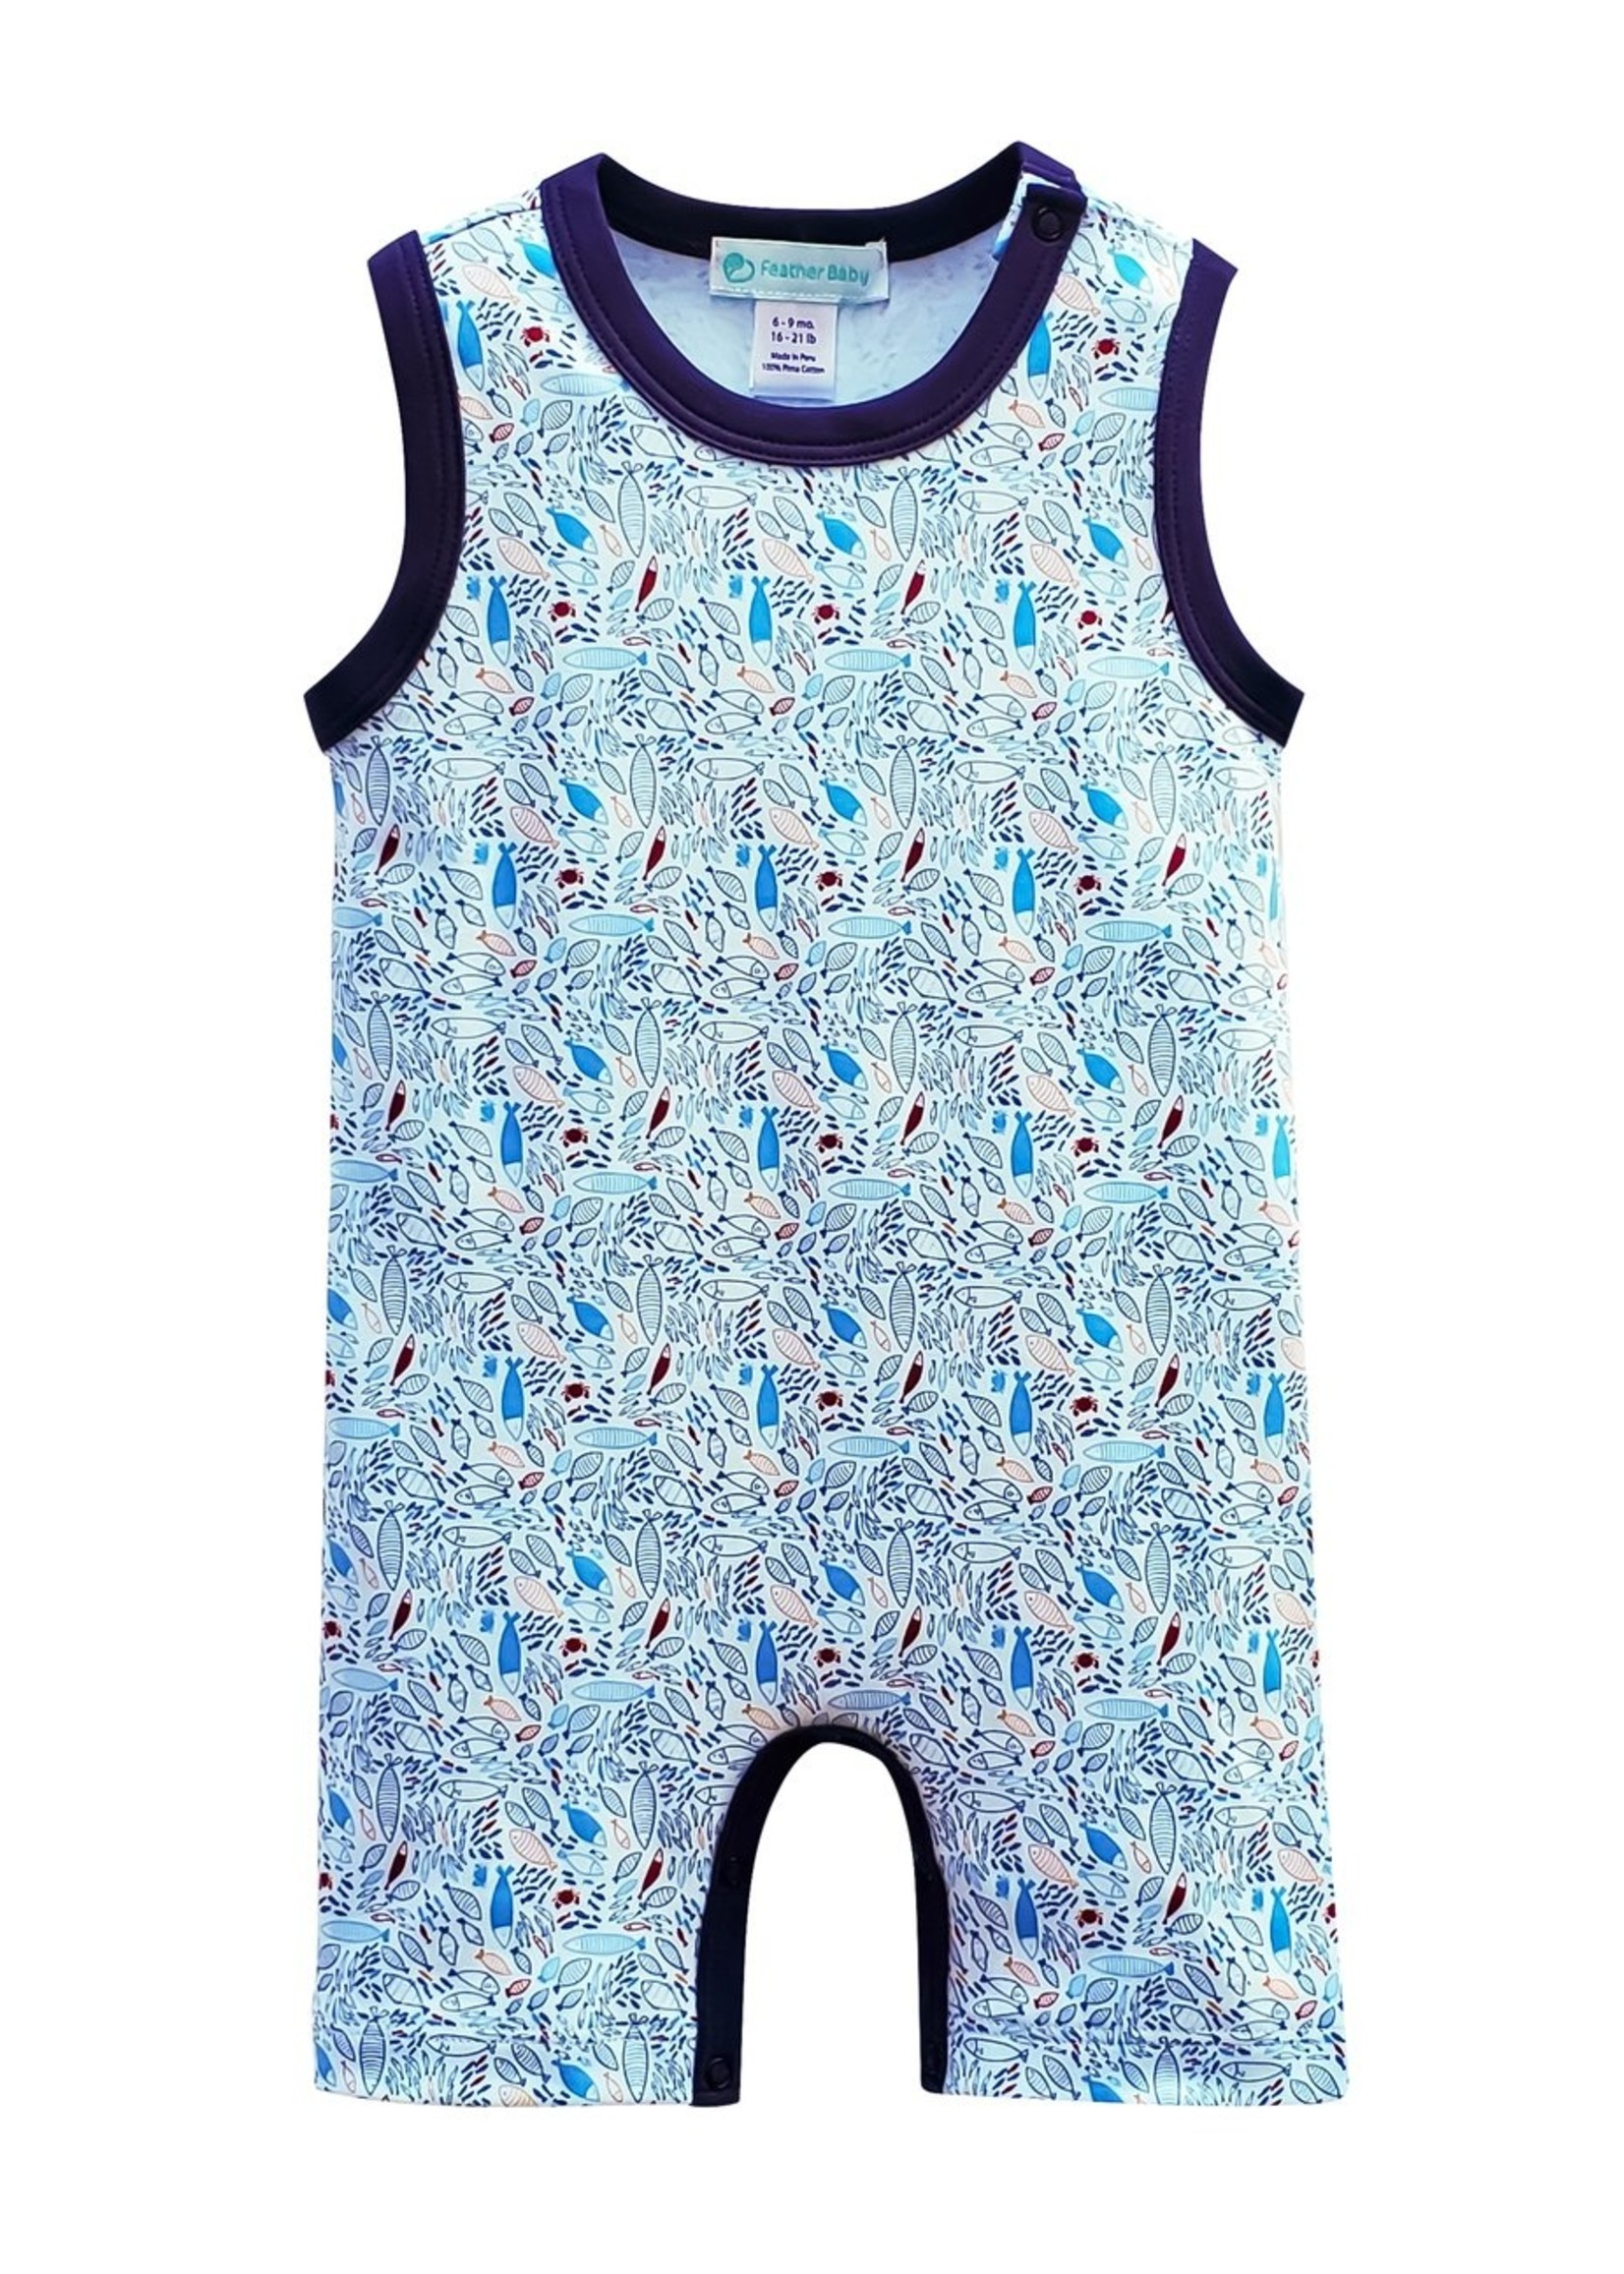 feather baby Crowded Fish- Red on Baby Blue Tank Romper